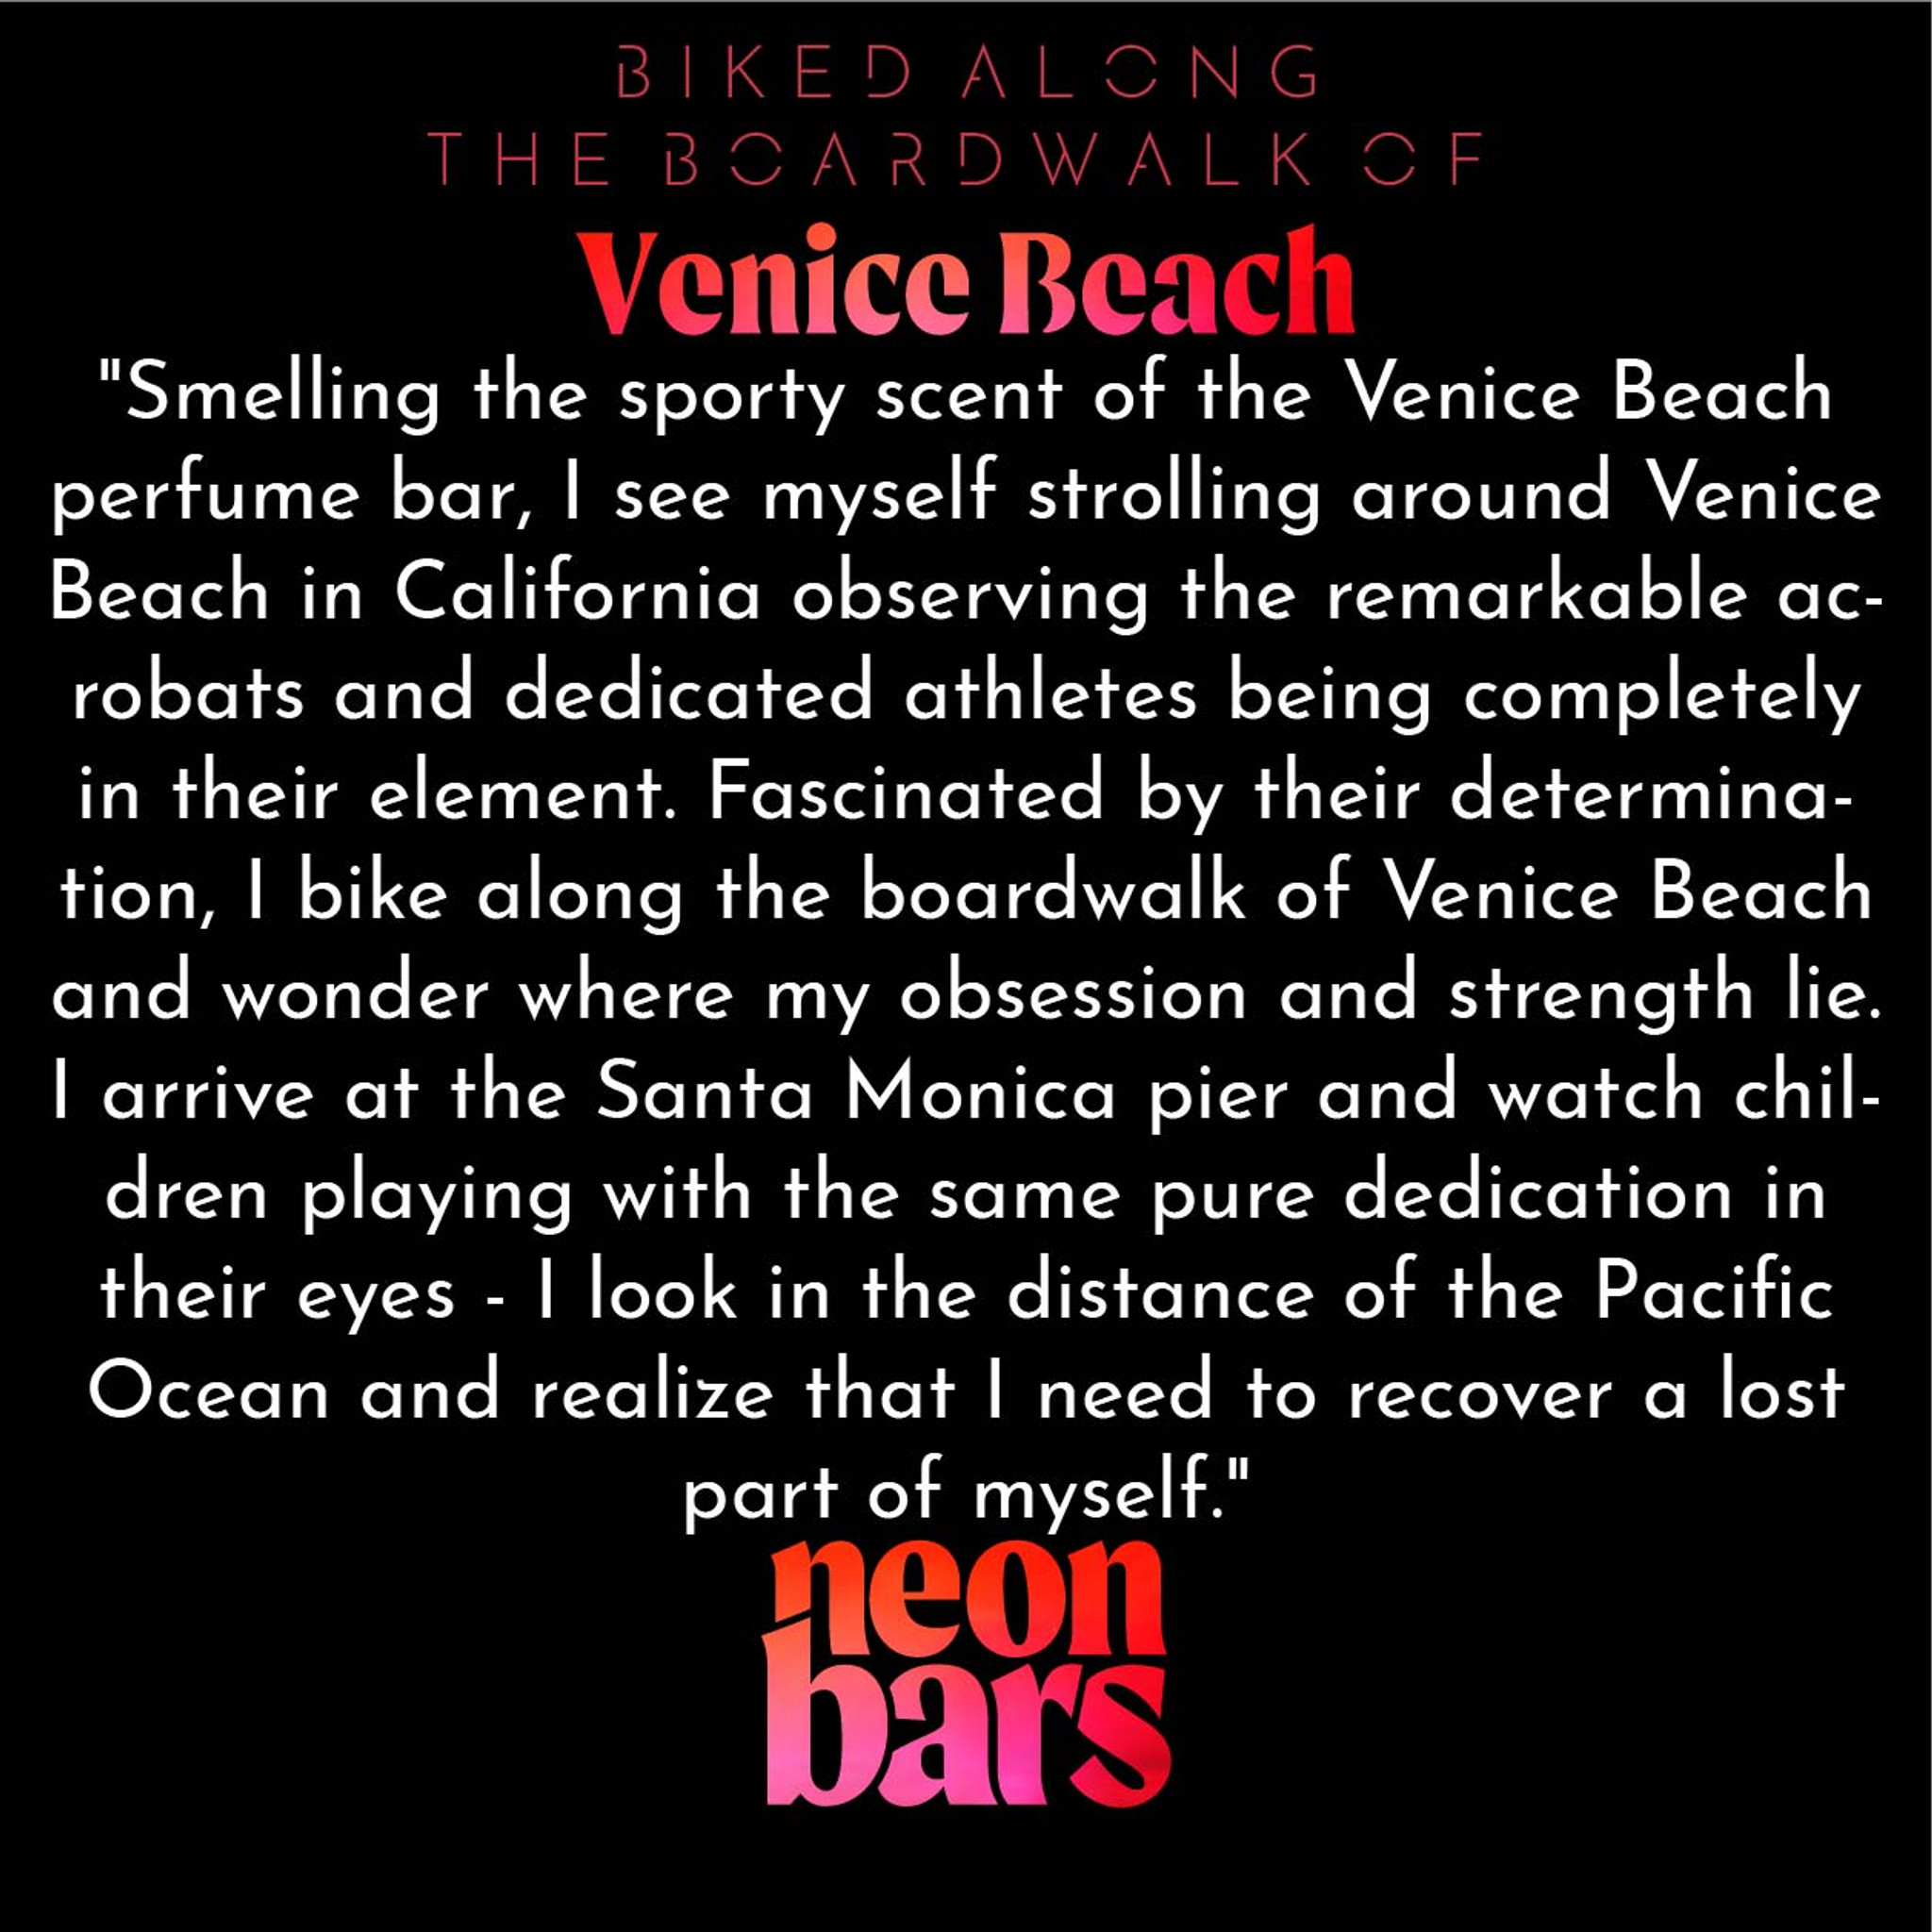 biked along the boardwalk of Venice Beach